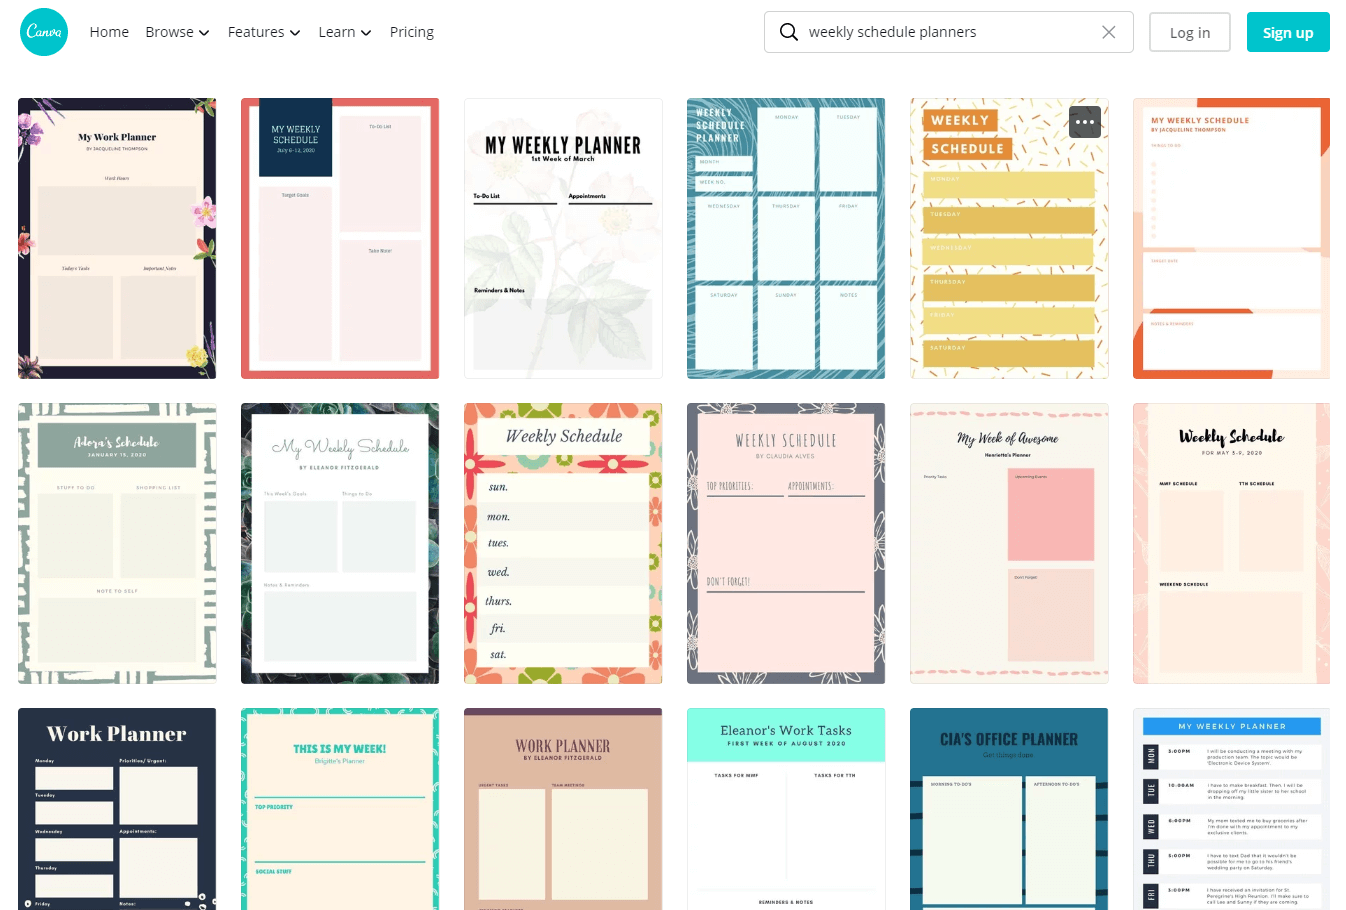 The Best Weekly Schedule Templates Organize Your Time Timecamp